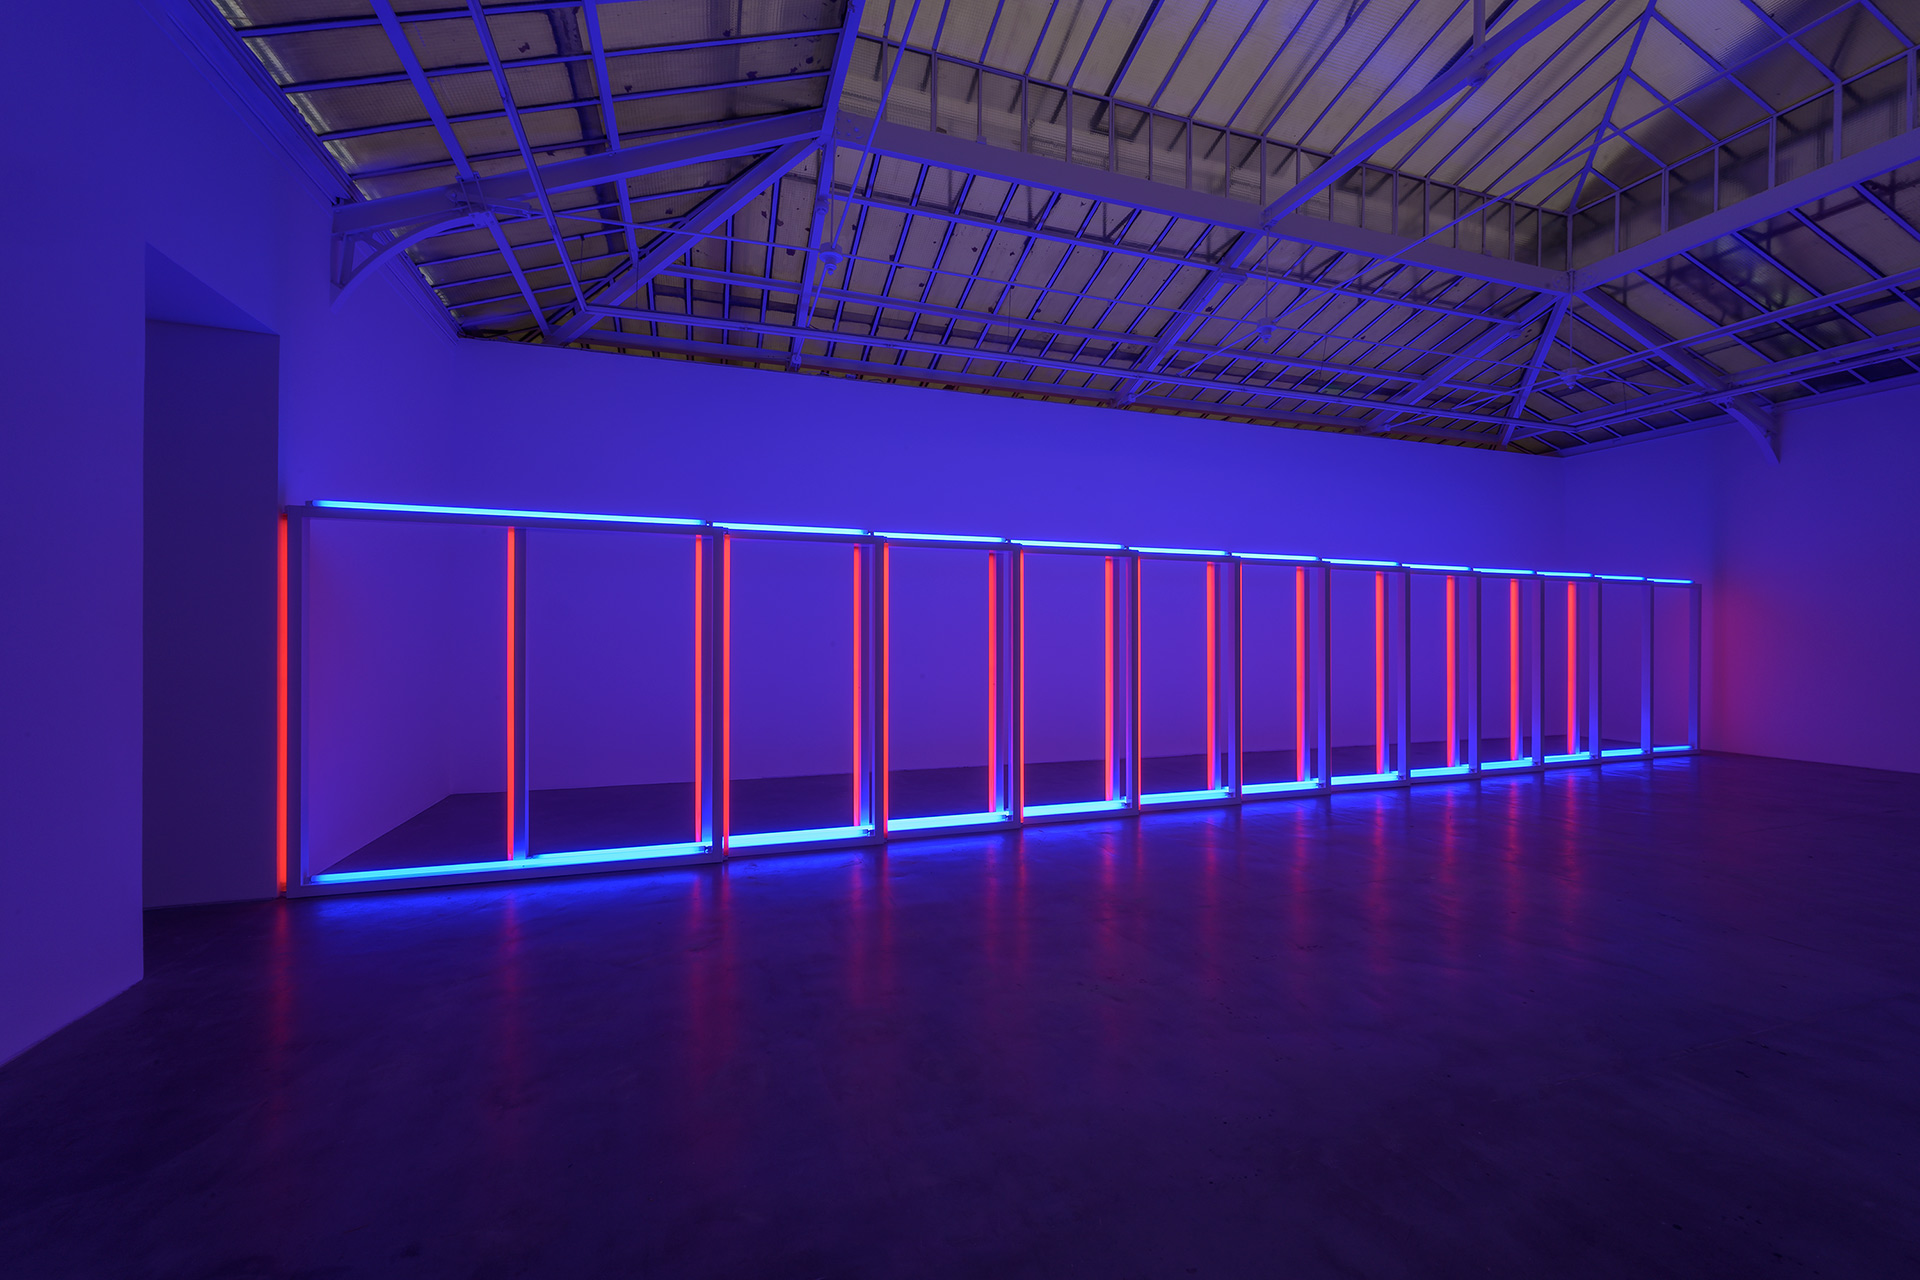 An untitled work by Dan Flavin, dated 1970.